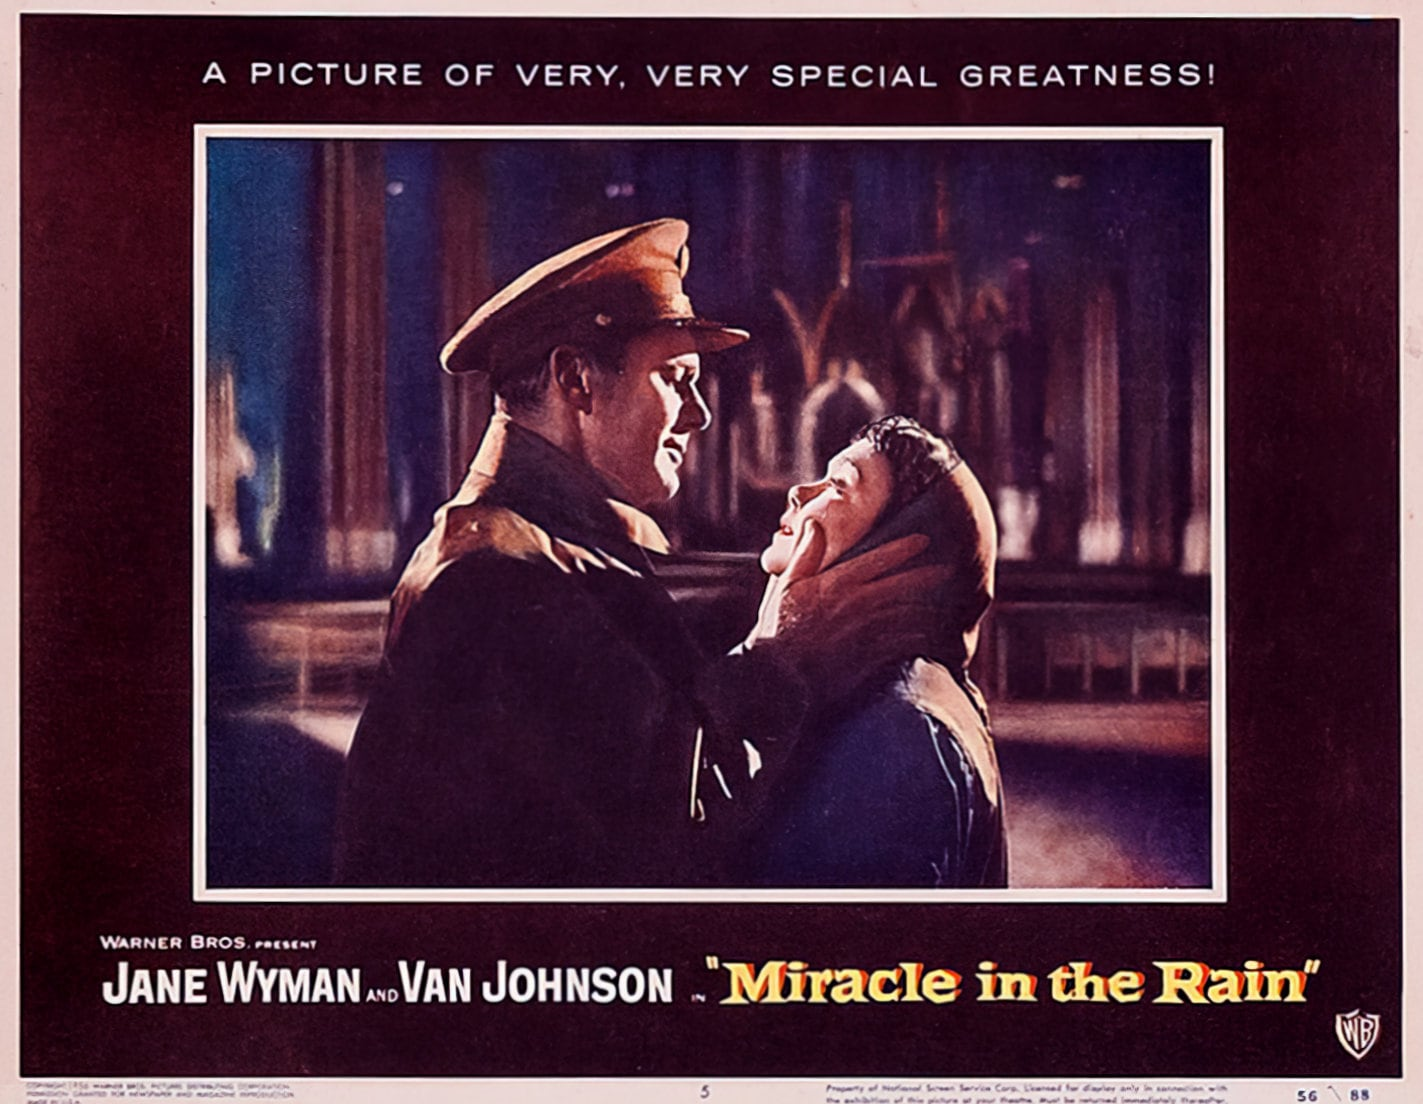 Miracle in the Rain movie lobby posters from 1956 (2)